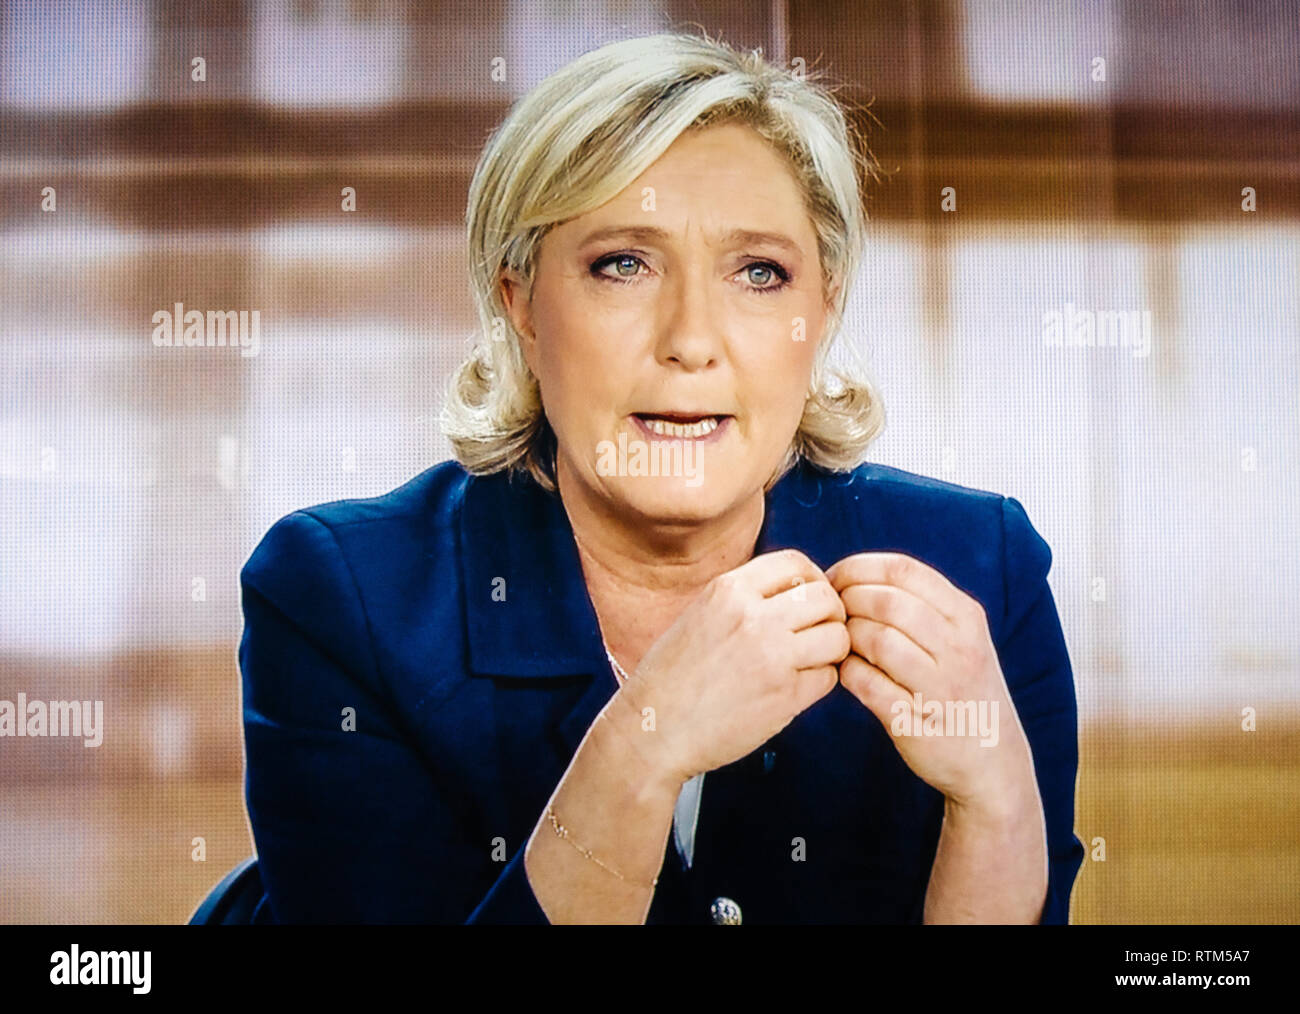 French Television News Stock Photos & French Television News Stock